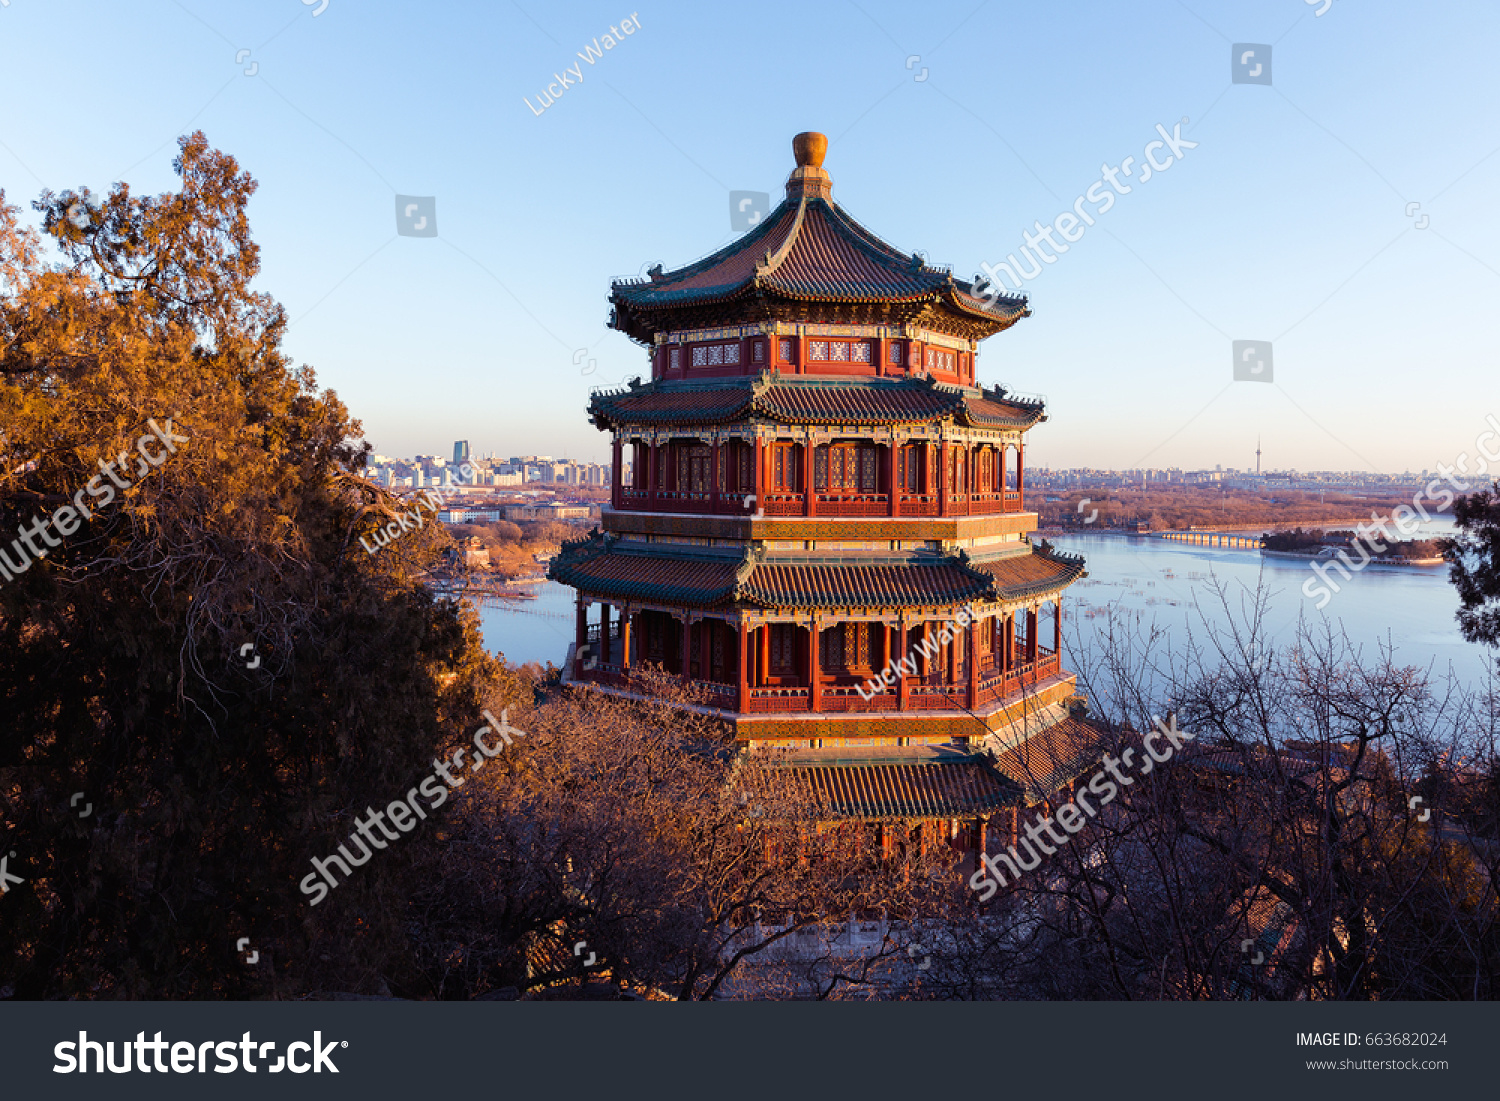 Tower Buddhist Incense Famous Ancient Architecture Stock Photo Safe